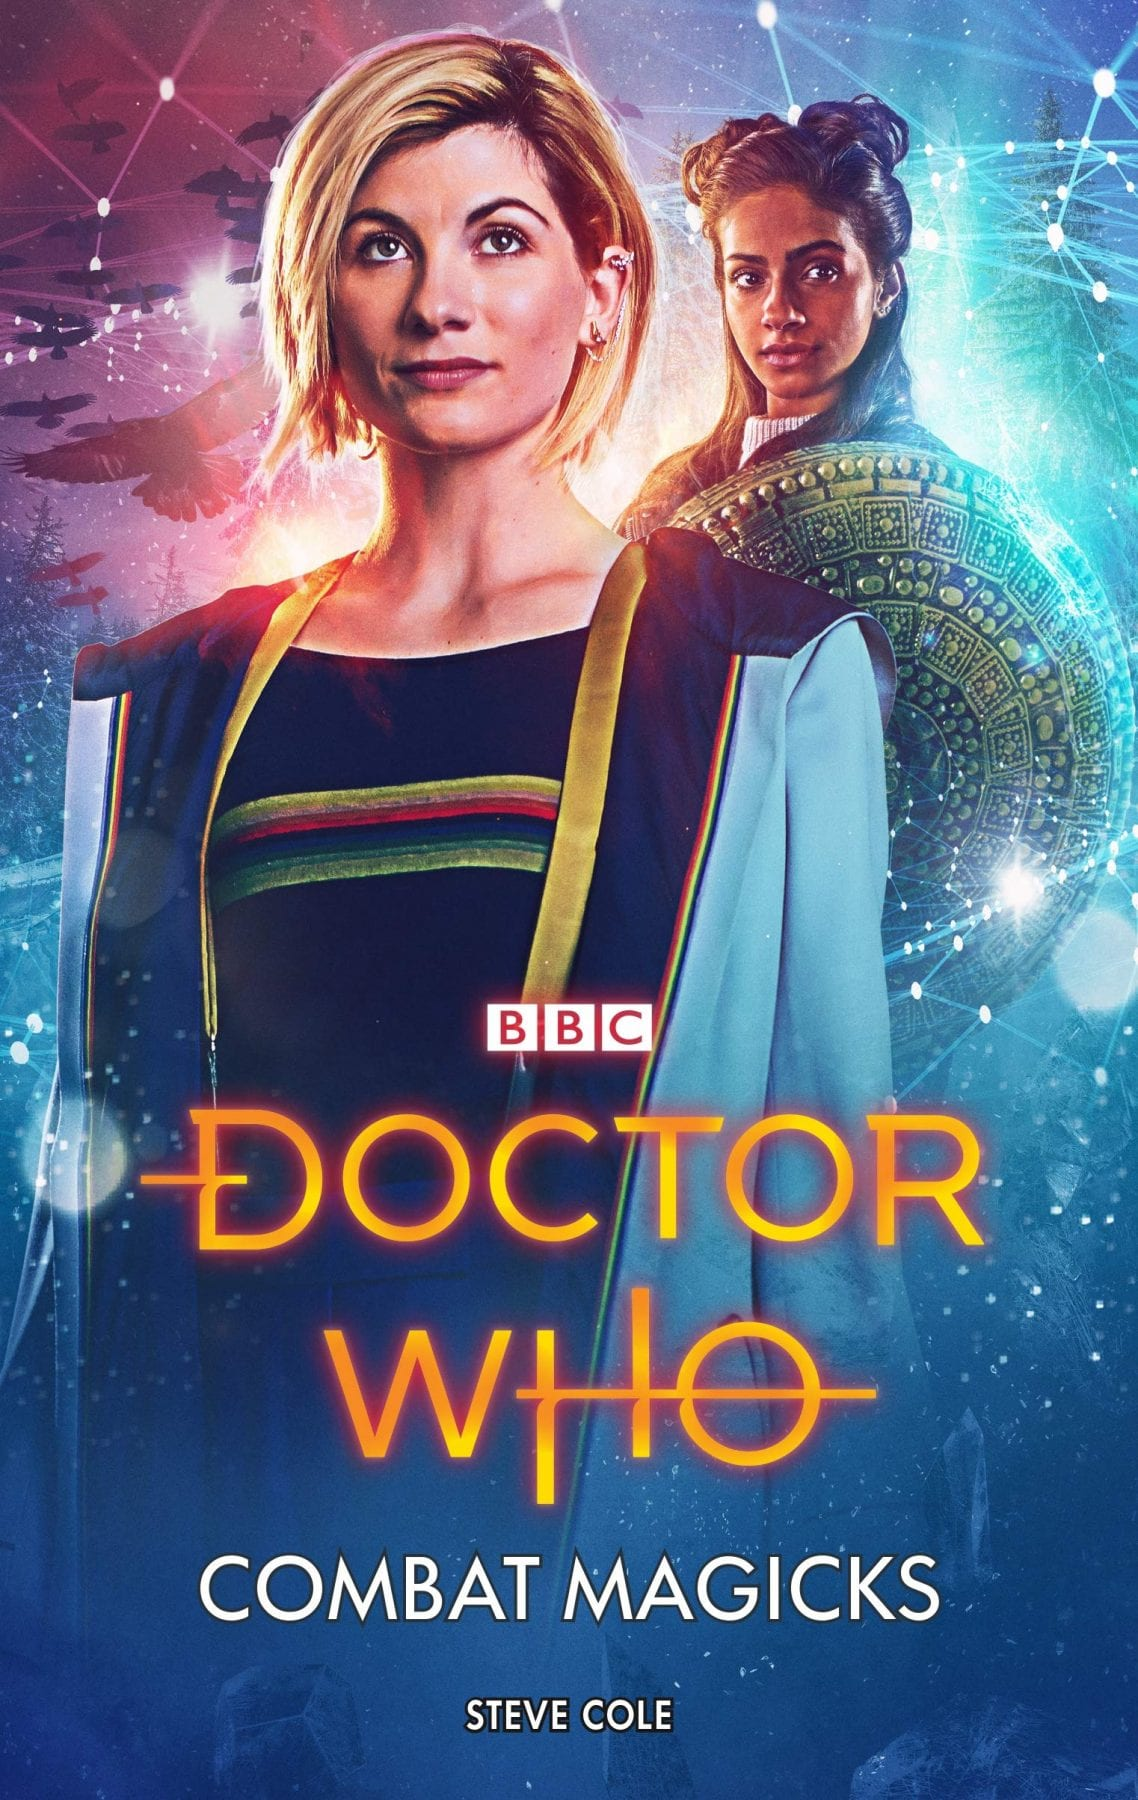 Doctor Who novel cover, 2019, Combat Magicks